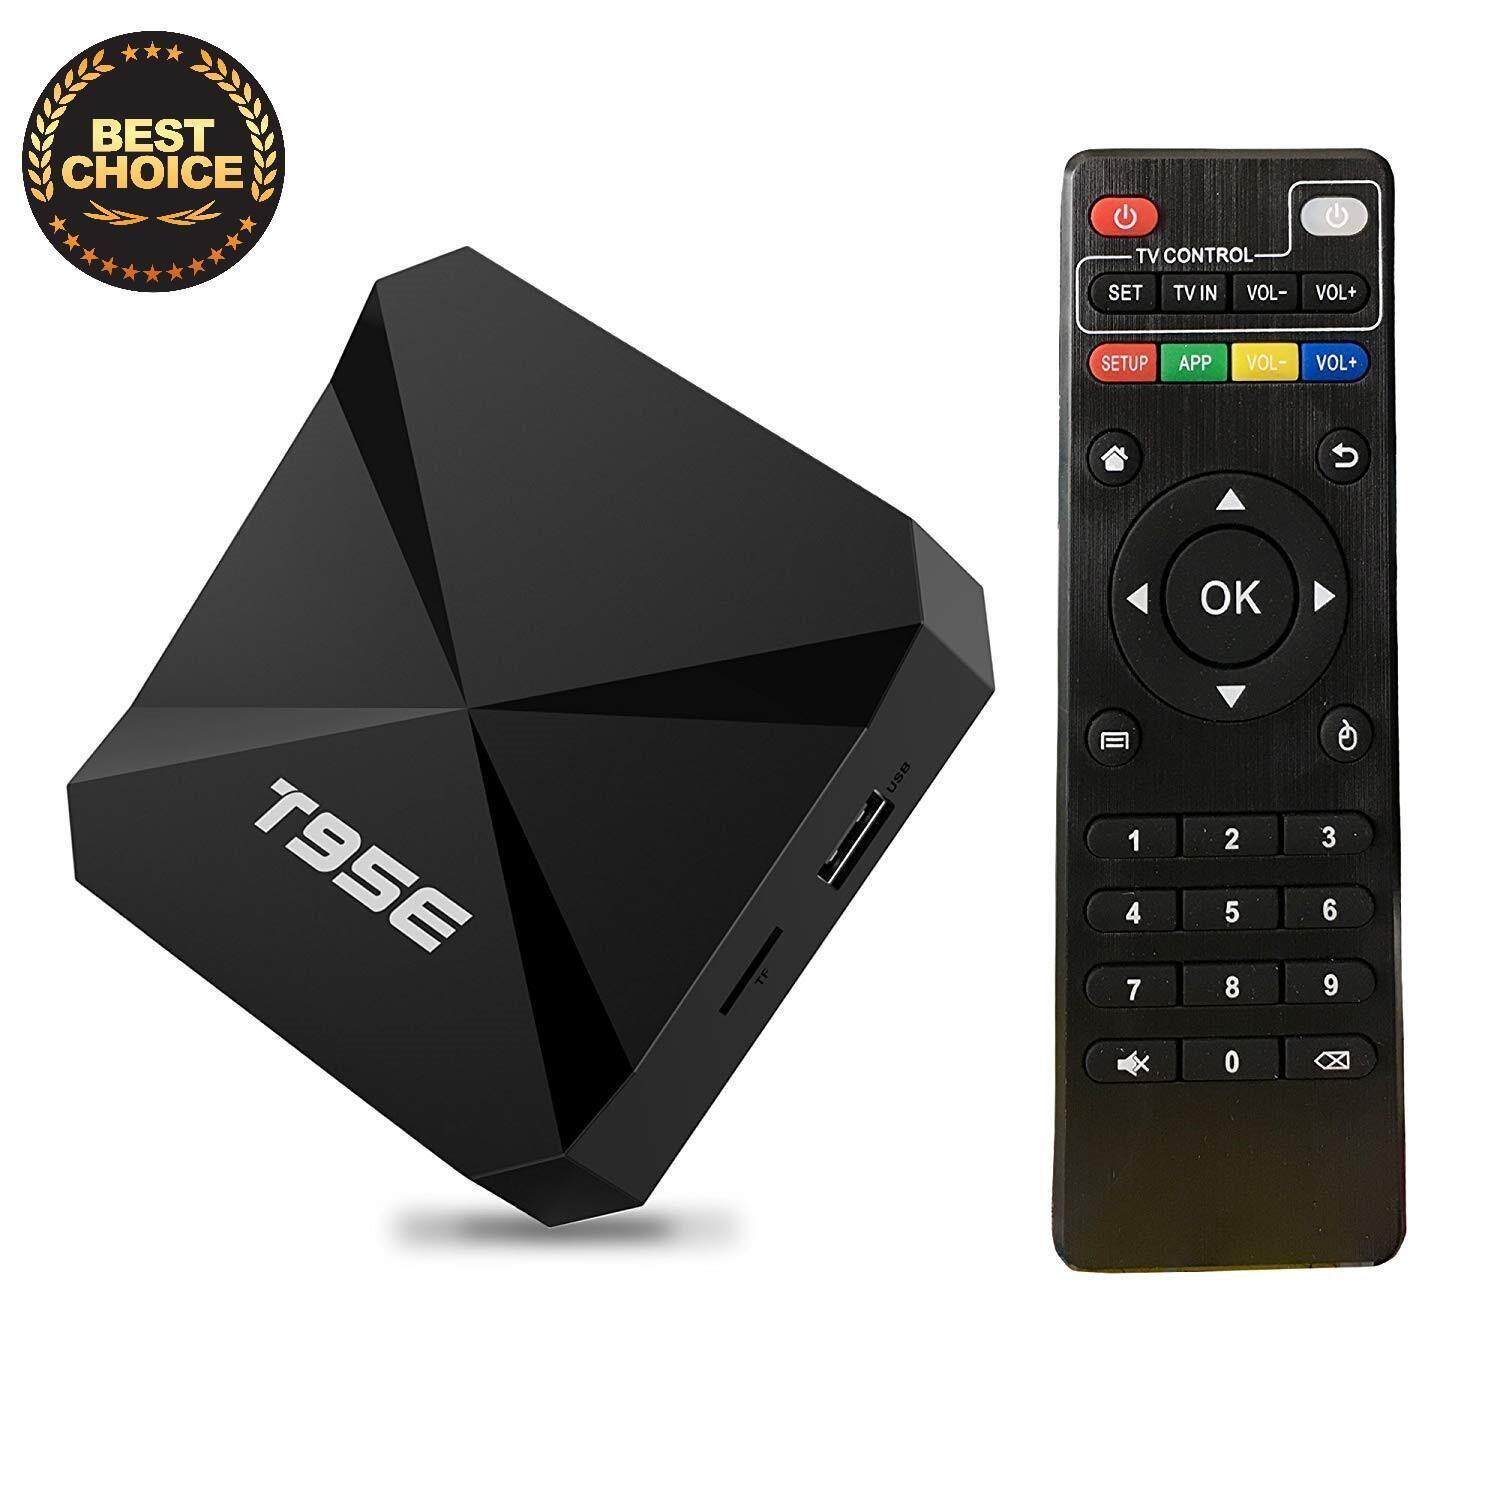 การใช้งาน  สกลนคร T95E 4K Media Player TV Box with Remote Control  Android 5.1  RK3229 Quad Core 2.0GHz  RAM: 1GB  ROM: 8GB  Support WiFi  3D  KD Playe